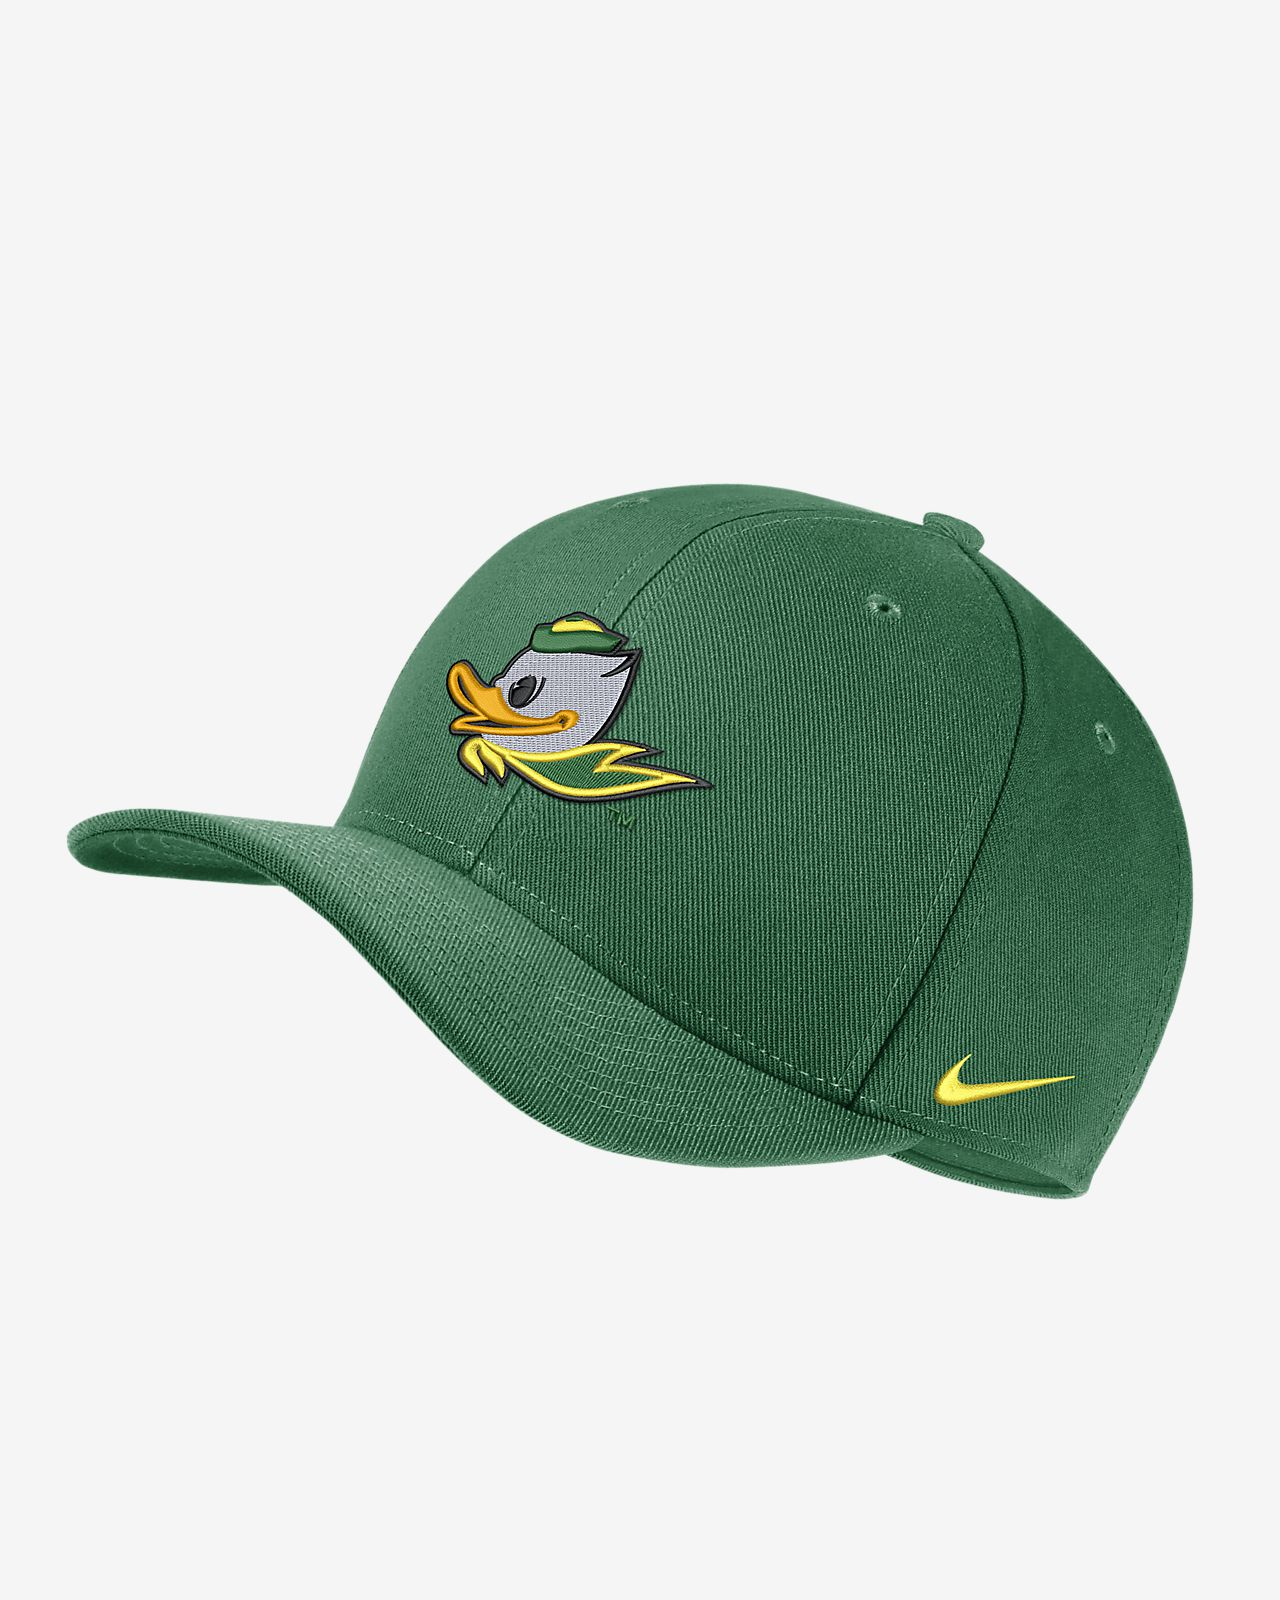 8f4104a2696be Nike College Dri-FIT Classic99 Swoosh Flex (Oregon) Fitted Hat. Nike.com